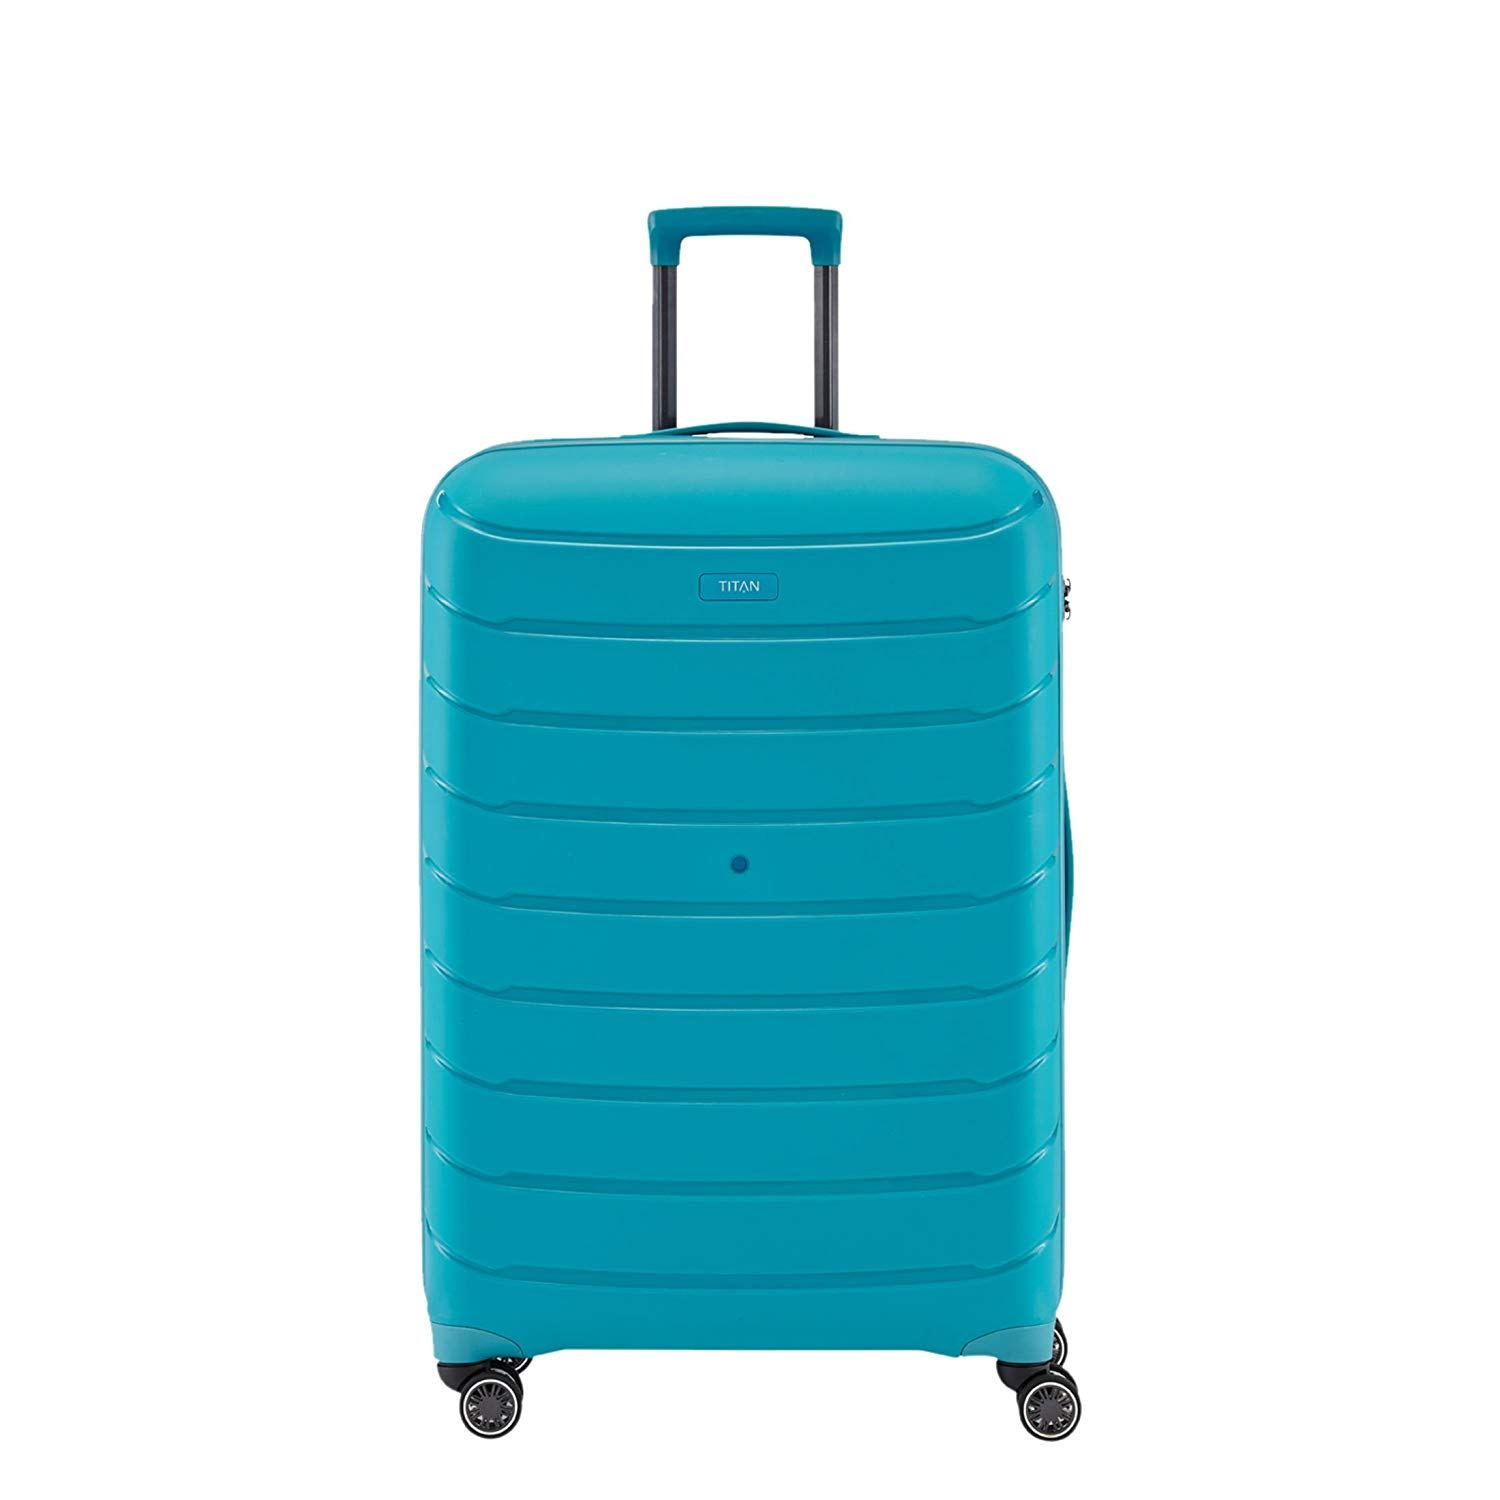 TITAN Limit Trolley S, 823406-21 Koffer, 55 cm, 39 L, Aqua Blue